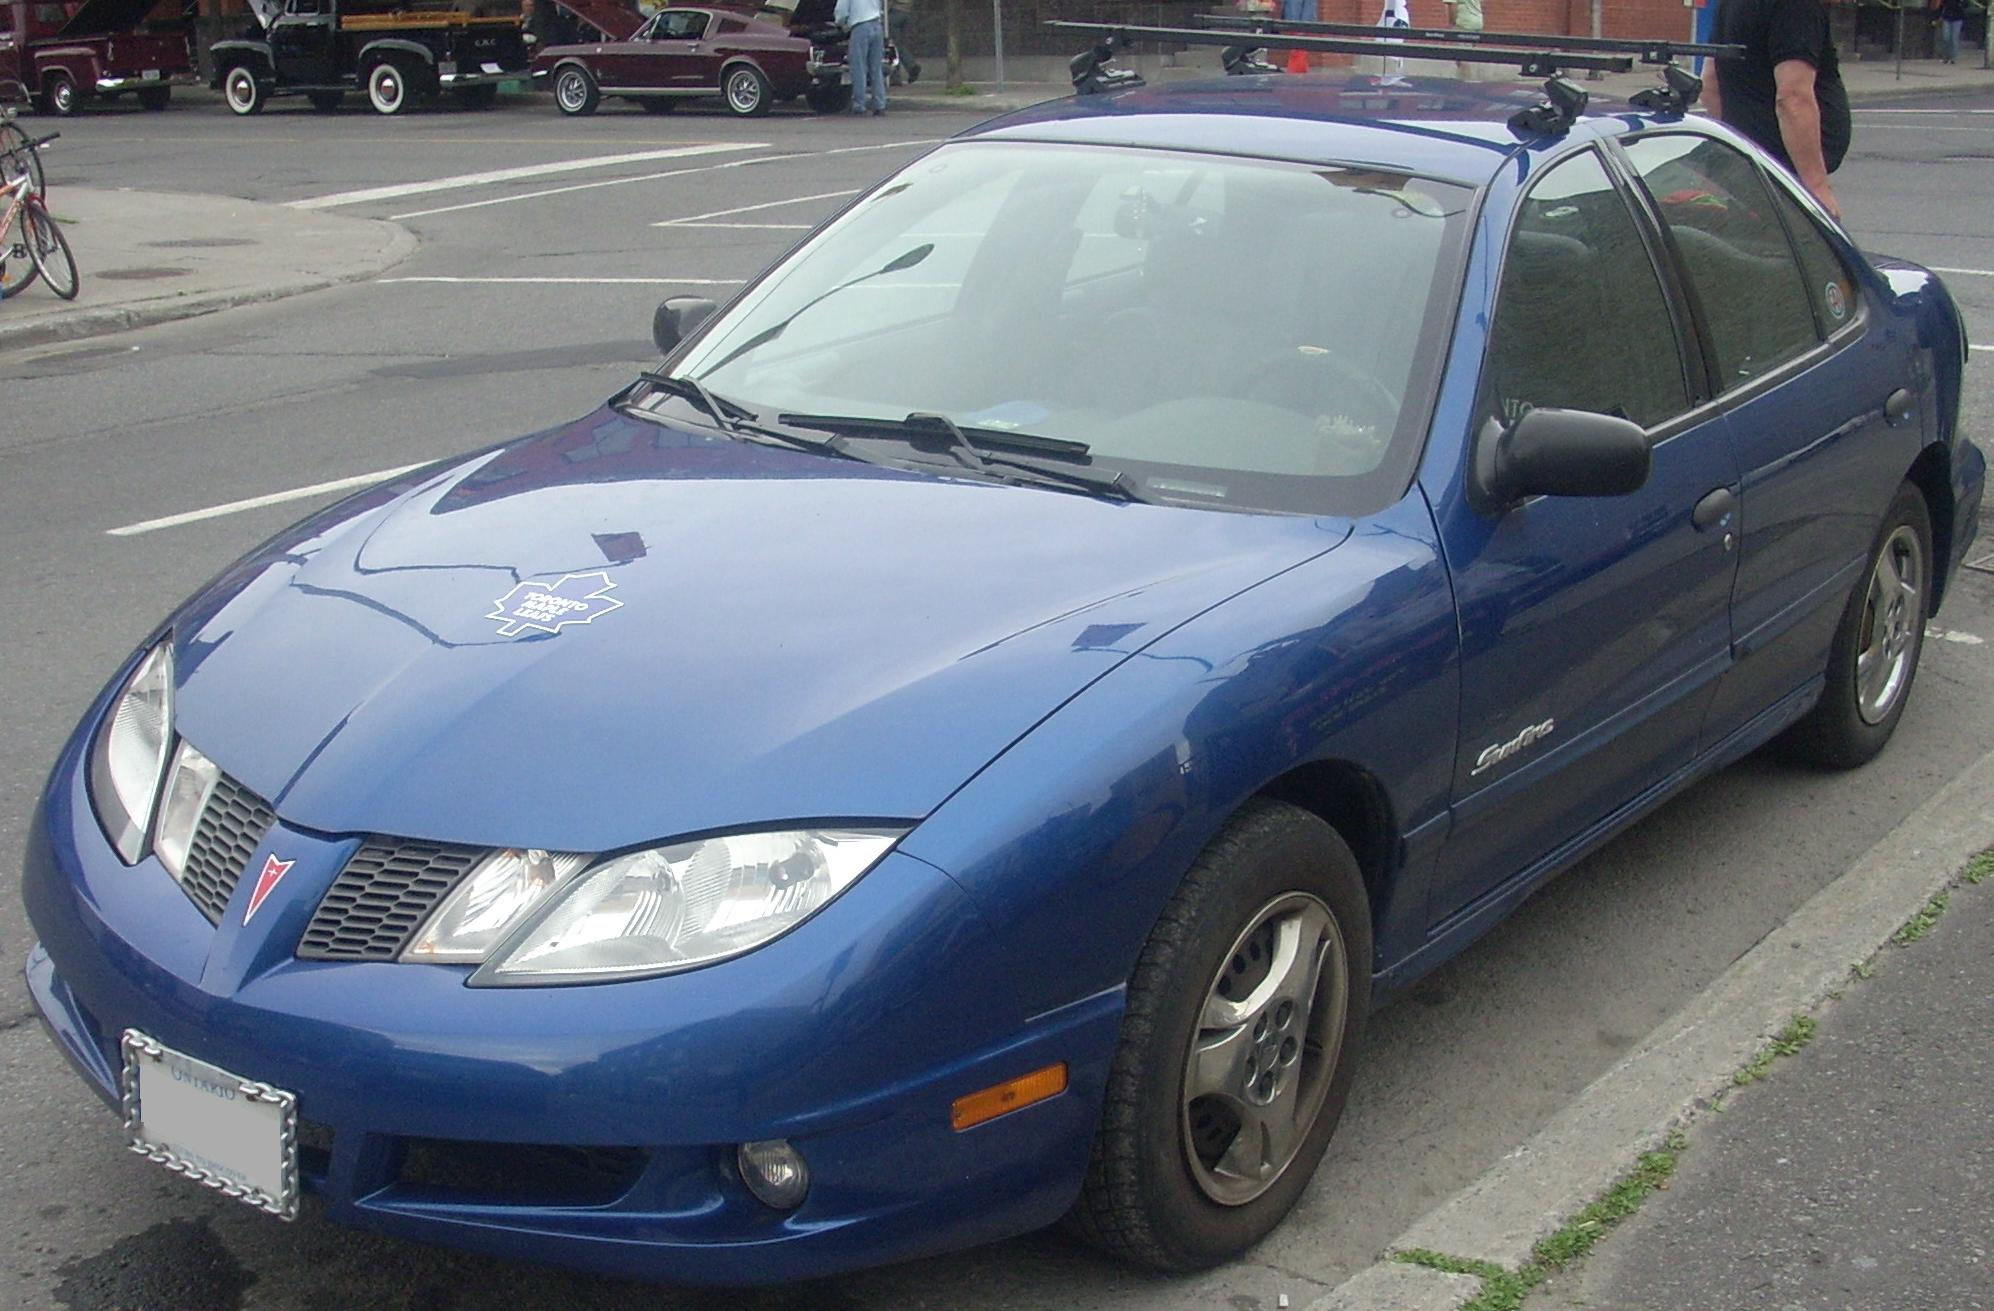 File 39 03 39 05 pontiac sunfire sedan byward auto classic jpg wikimedia commons